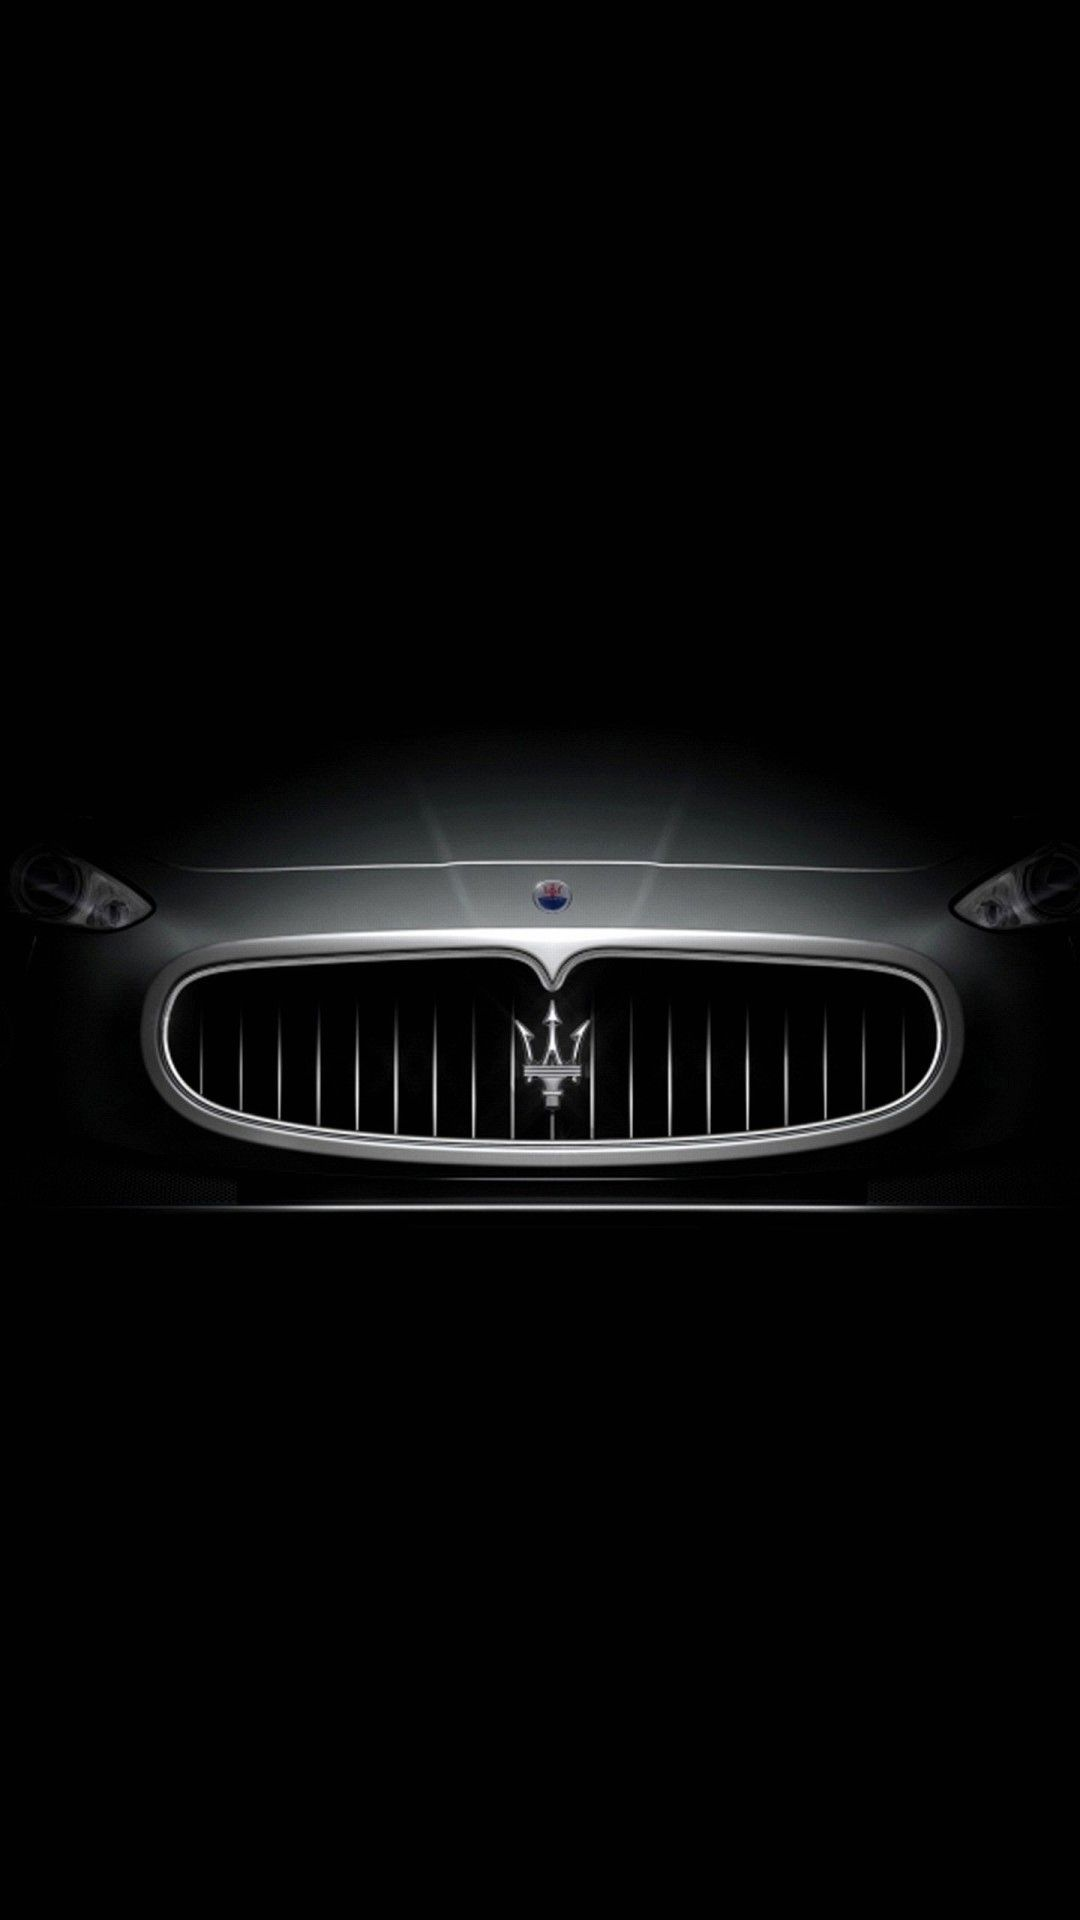 Image result for iphone 6 awesome wallpaper Maserati car 1080x1920